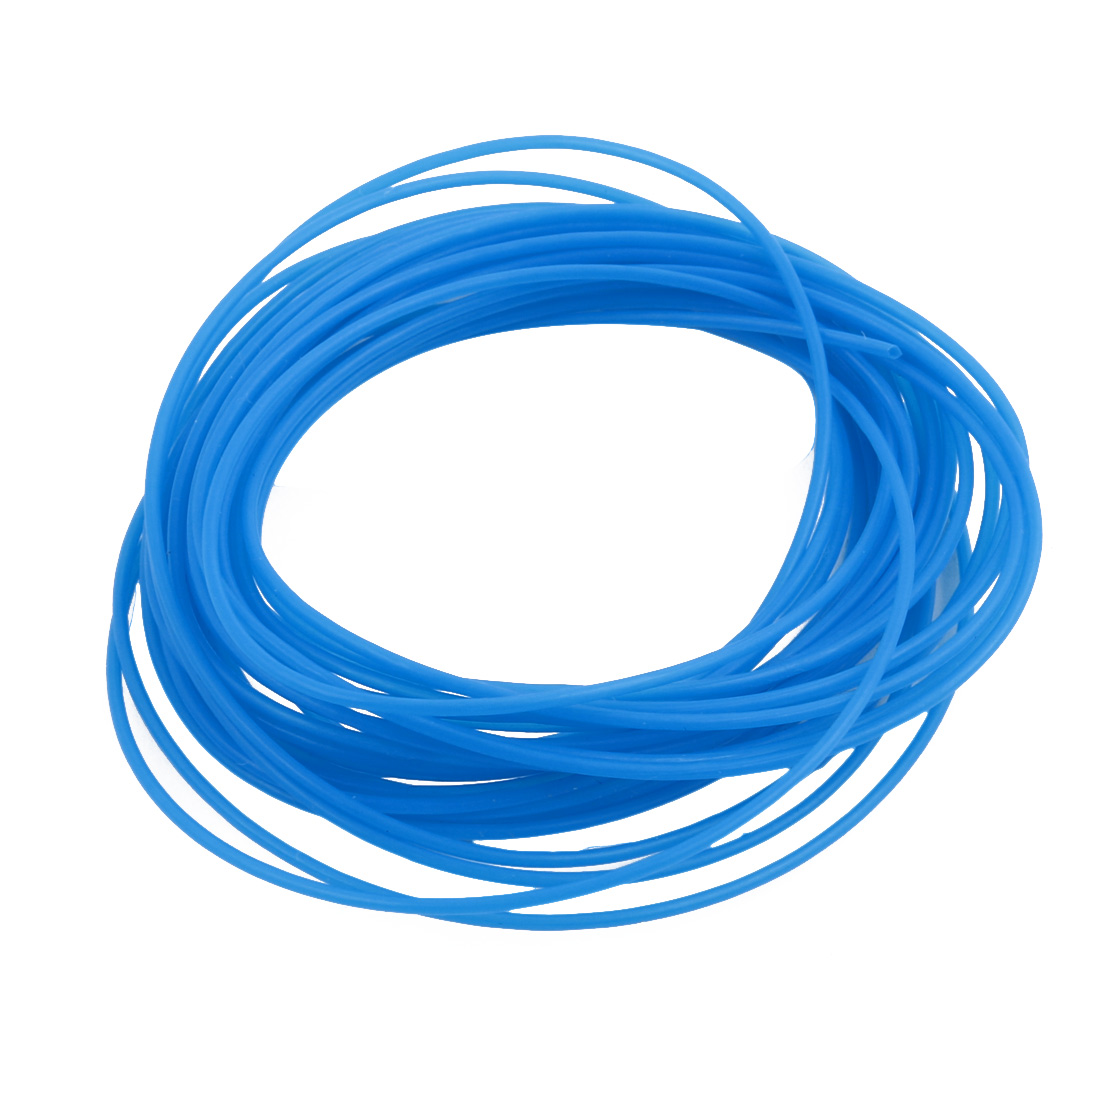 0.71mmx1.01mm PTFE Resistant High Temperature Blue Tubing 5 Meters 16.4Ft